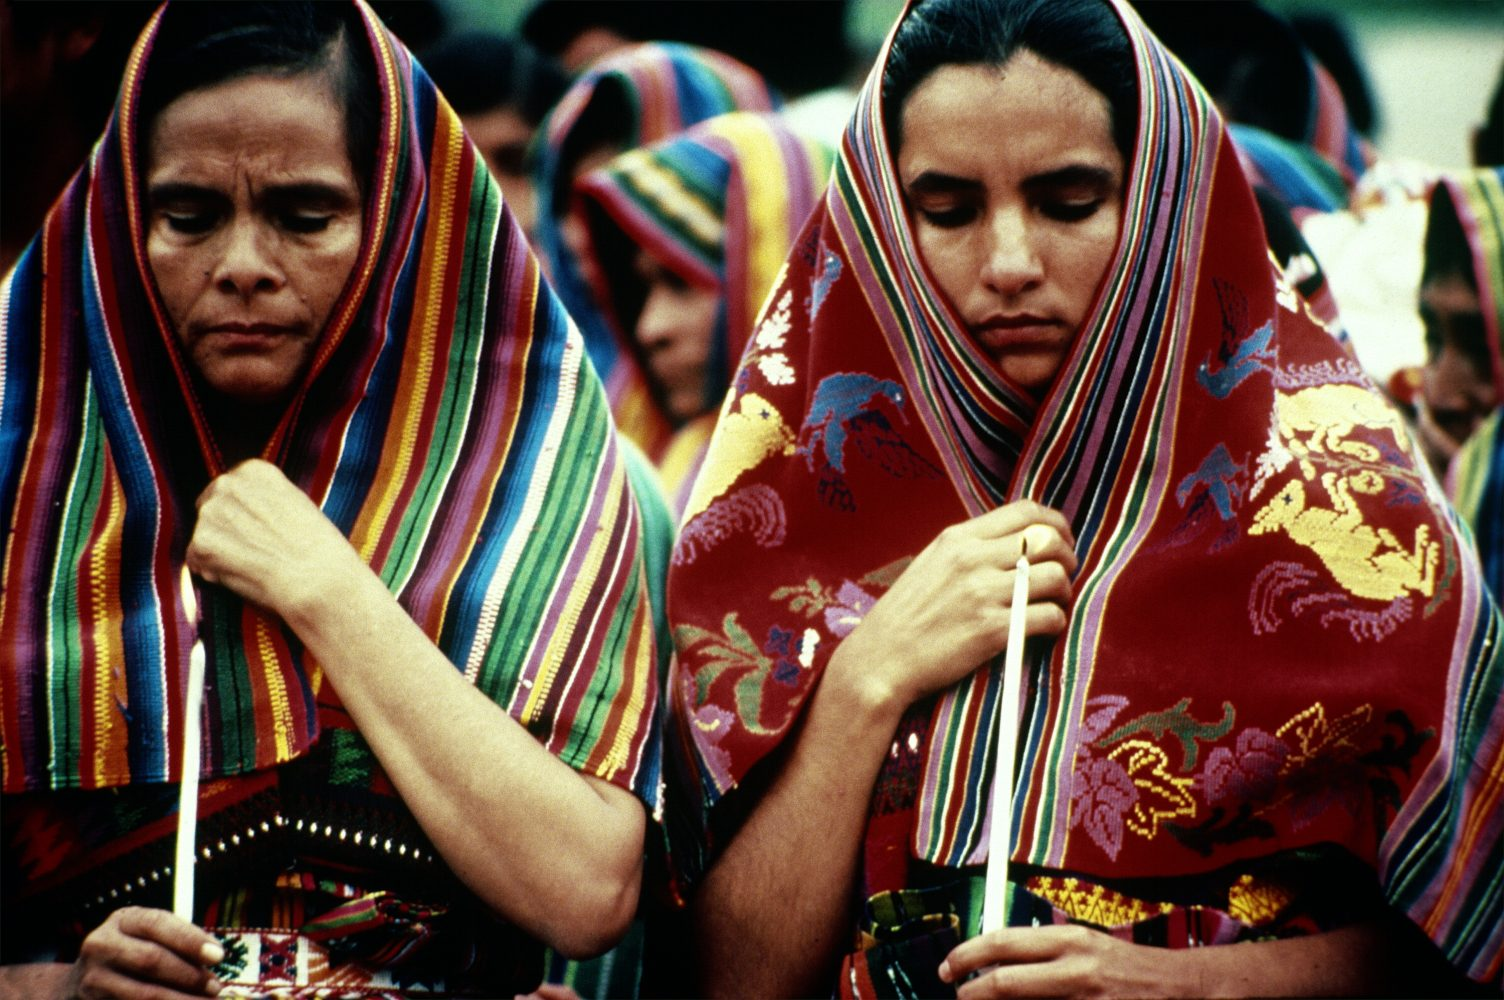 Gregory Nava's Classic Film 'El Norte' Returns to Theaters for One Day to Celebrate 35th Anniversary